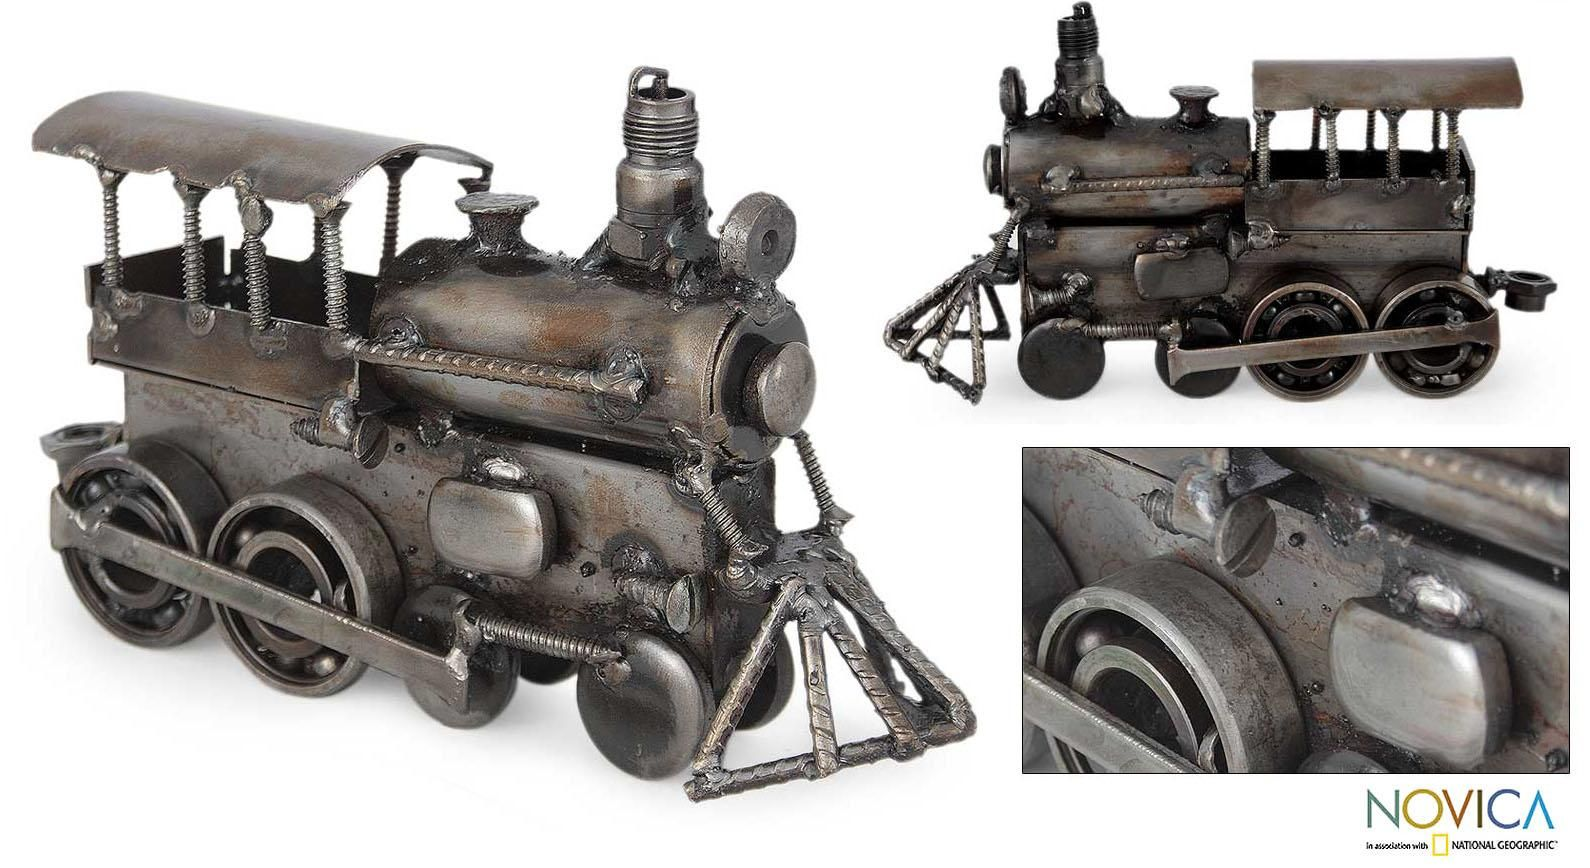 This train engine sculpture is built from discarded thick wire, metal sheets, nuts and screws, as well as discarded pieces from a die machine. When Mexico's Armando Ramirez builds the train sculpture's main frame, he uses die pieces to form the cauldron.